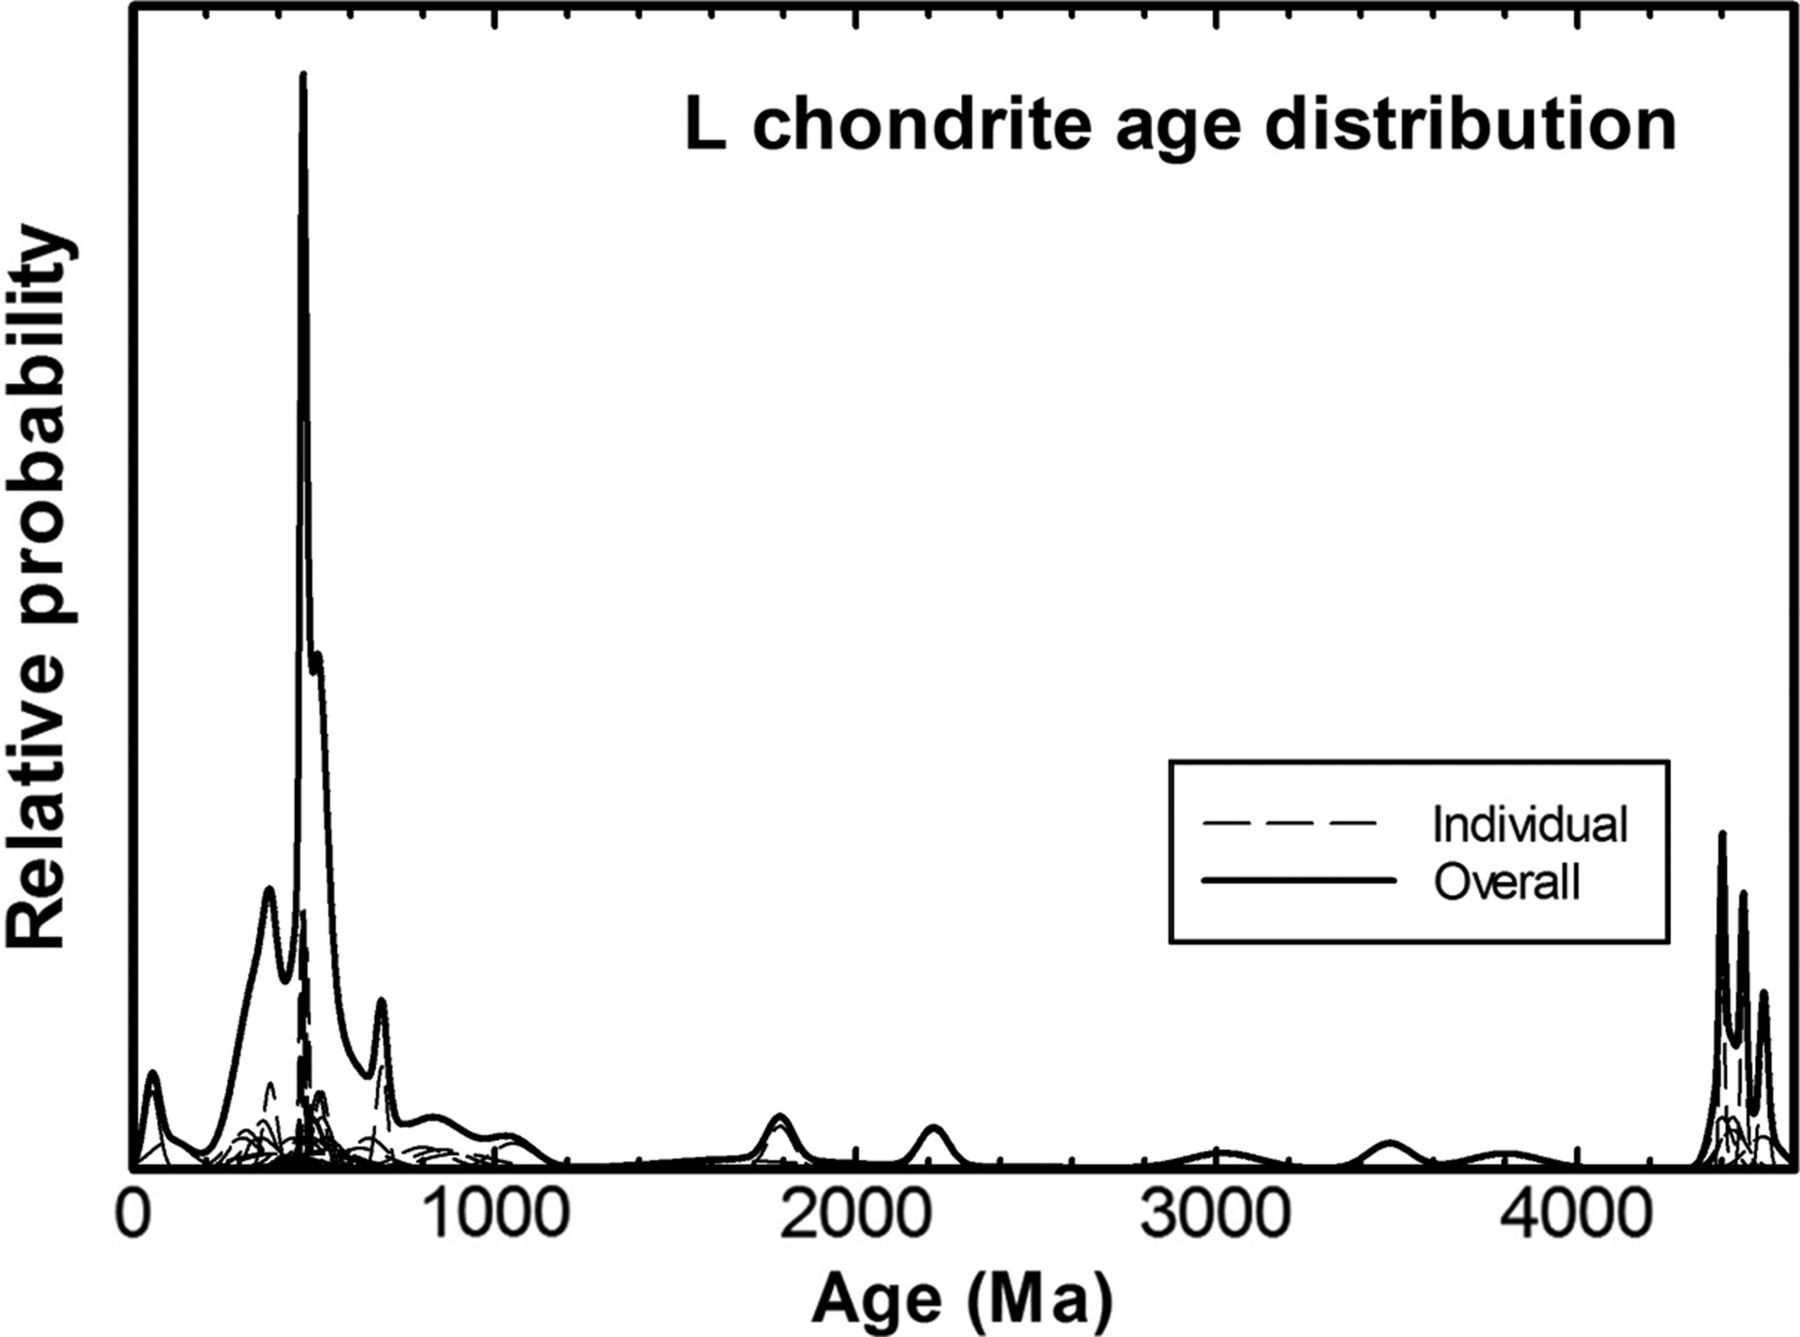 40Ar/39Ar ages of impacts involving ordinary chondrite